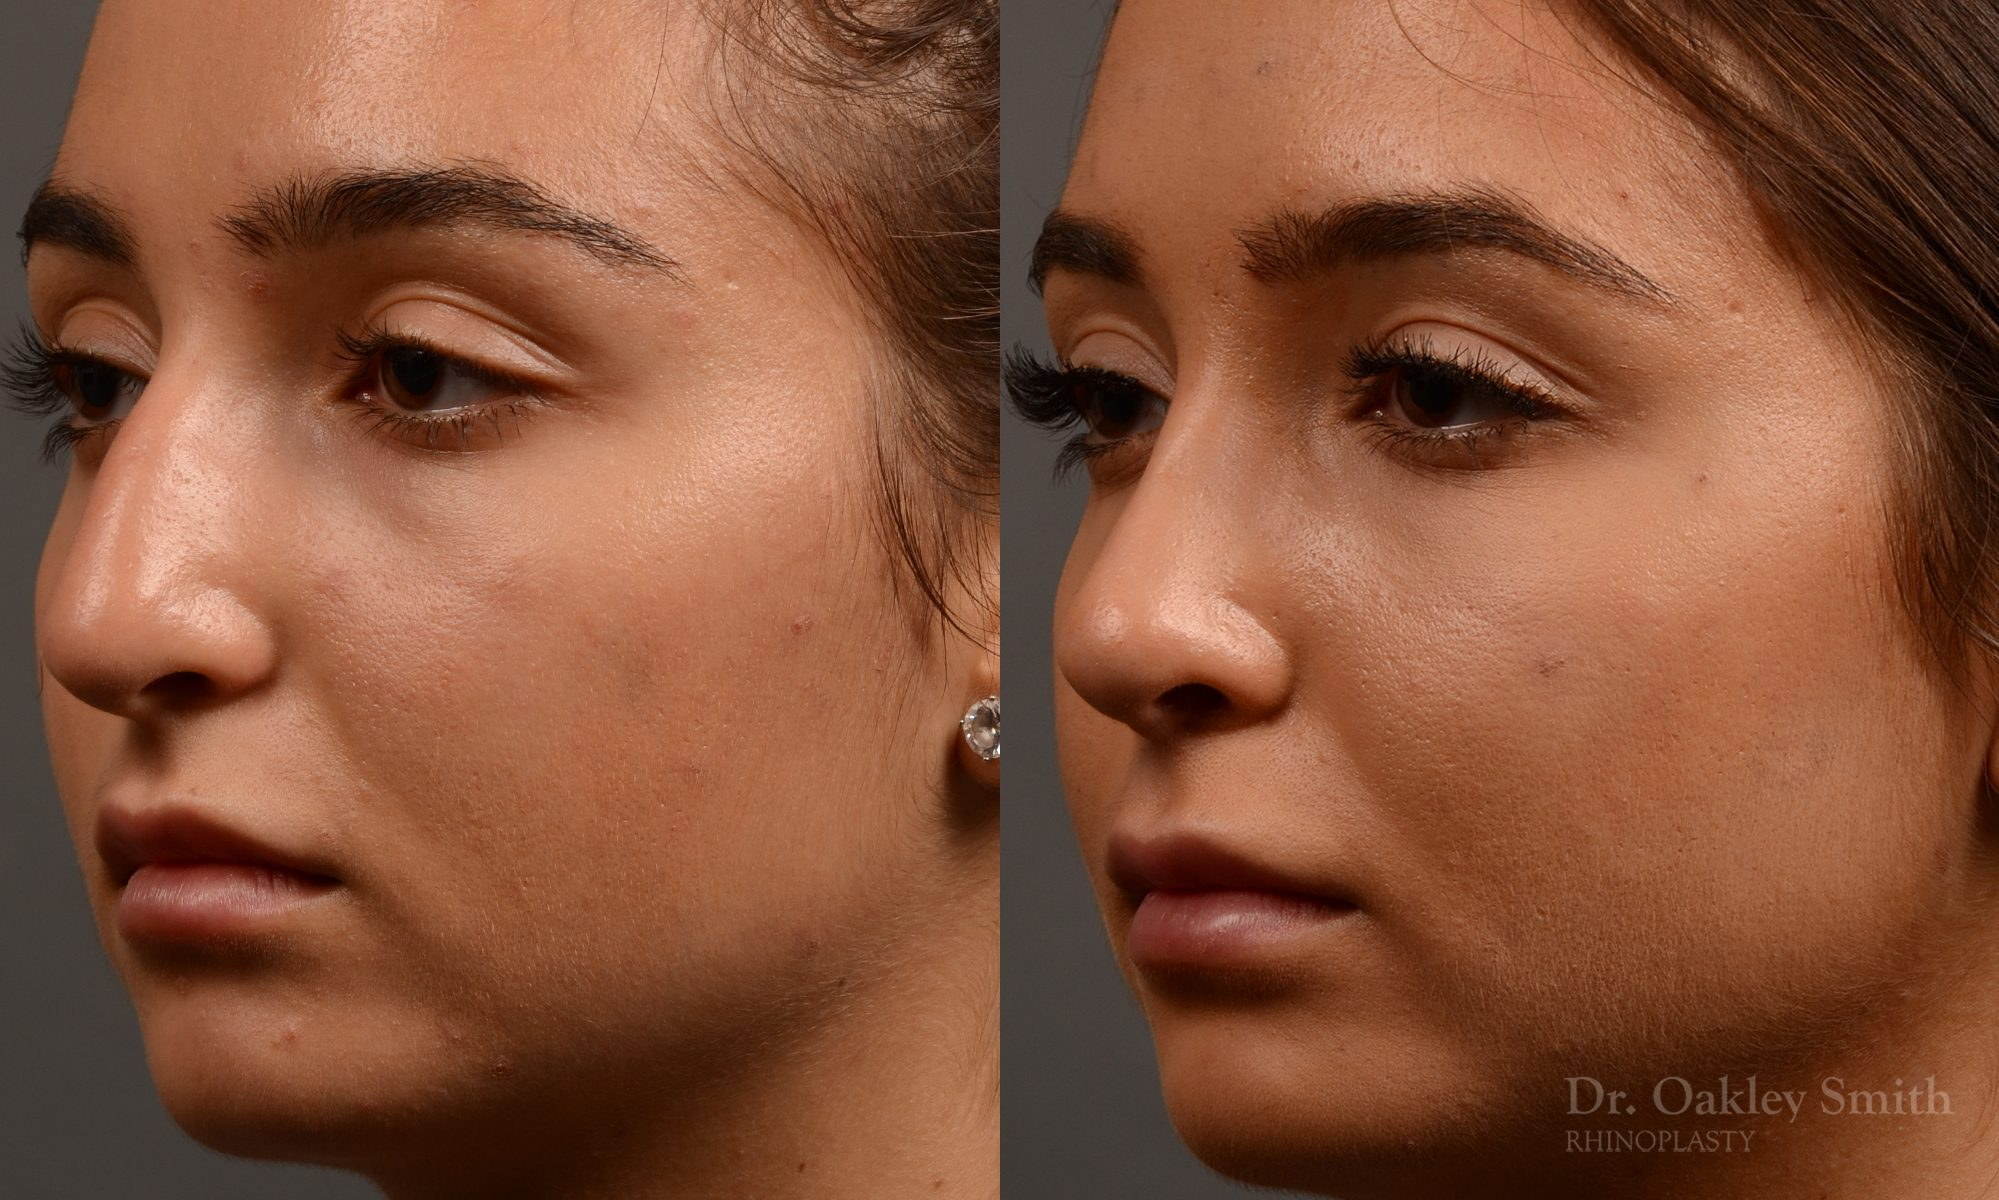 400 - Expert Rhinoplasty nose job surgery to reduce the size of this womans nose.